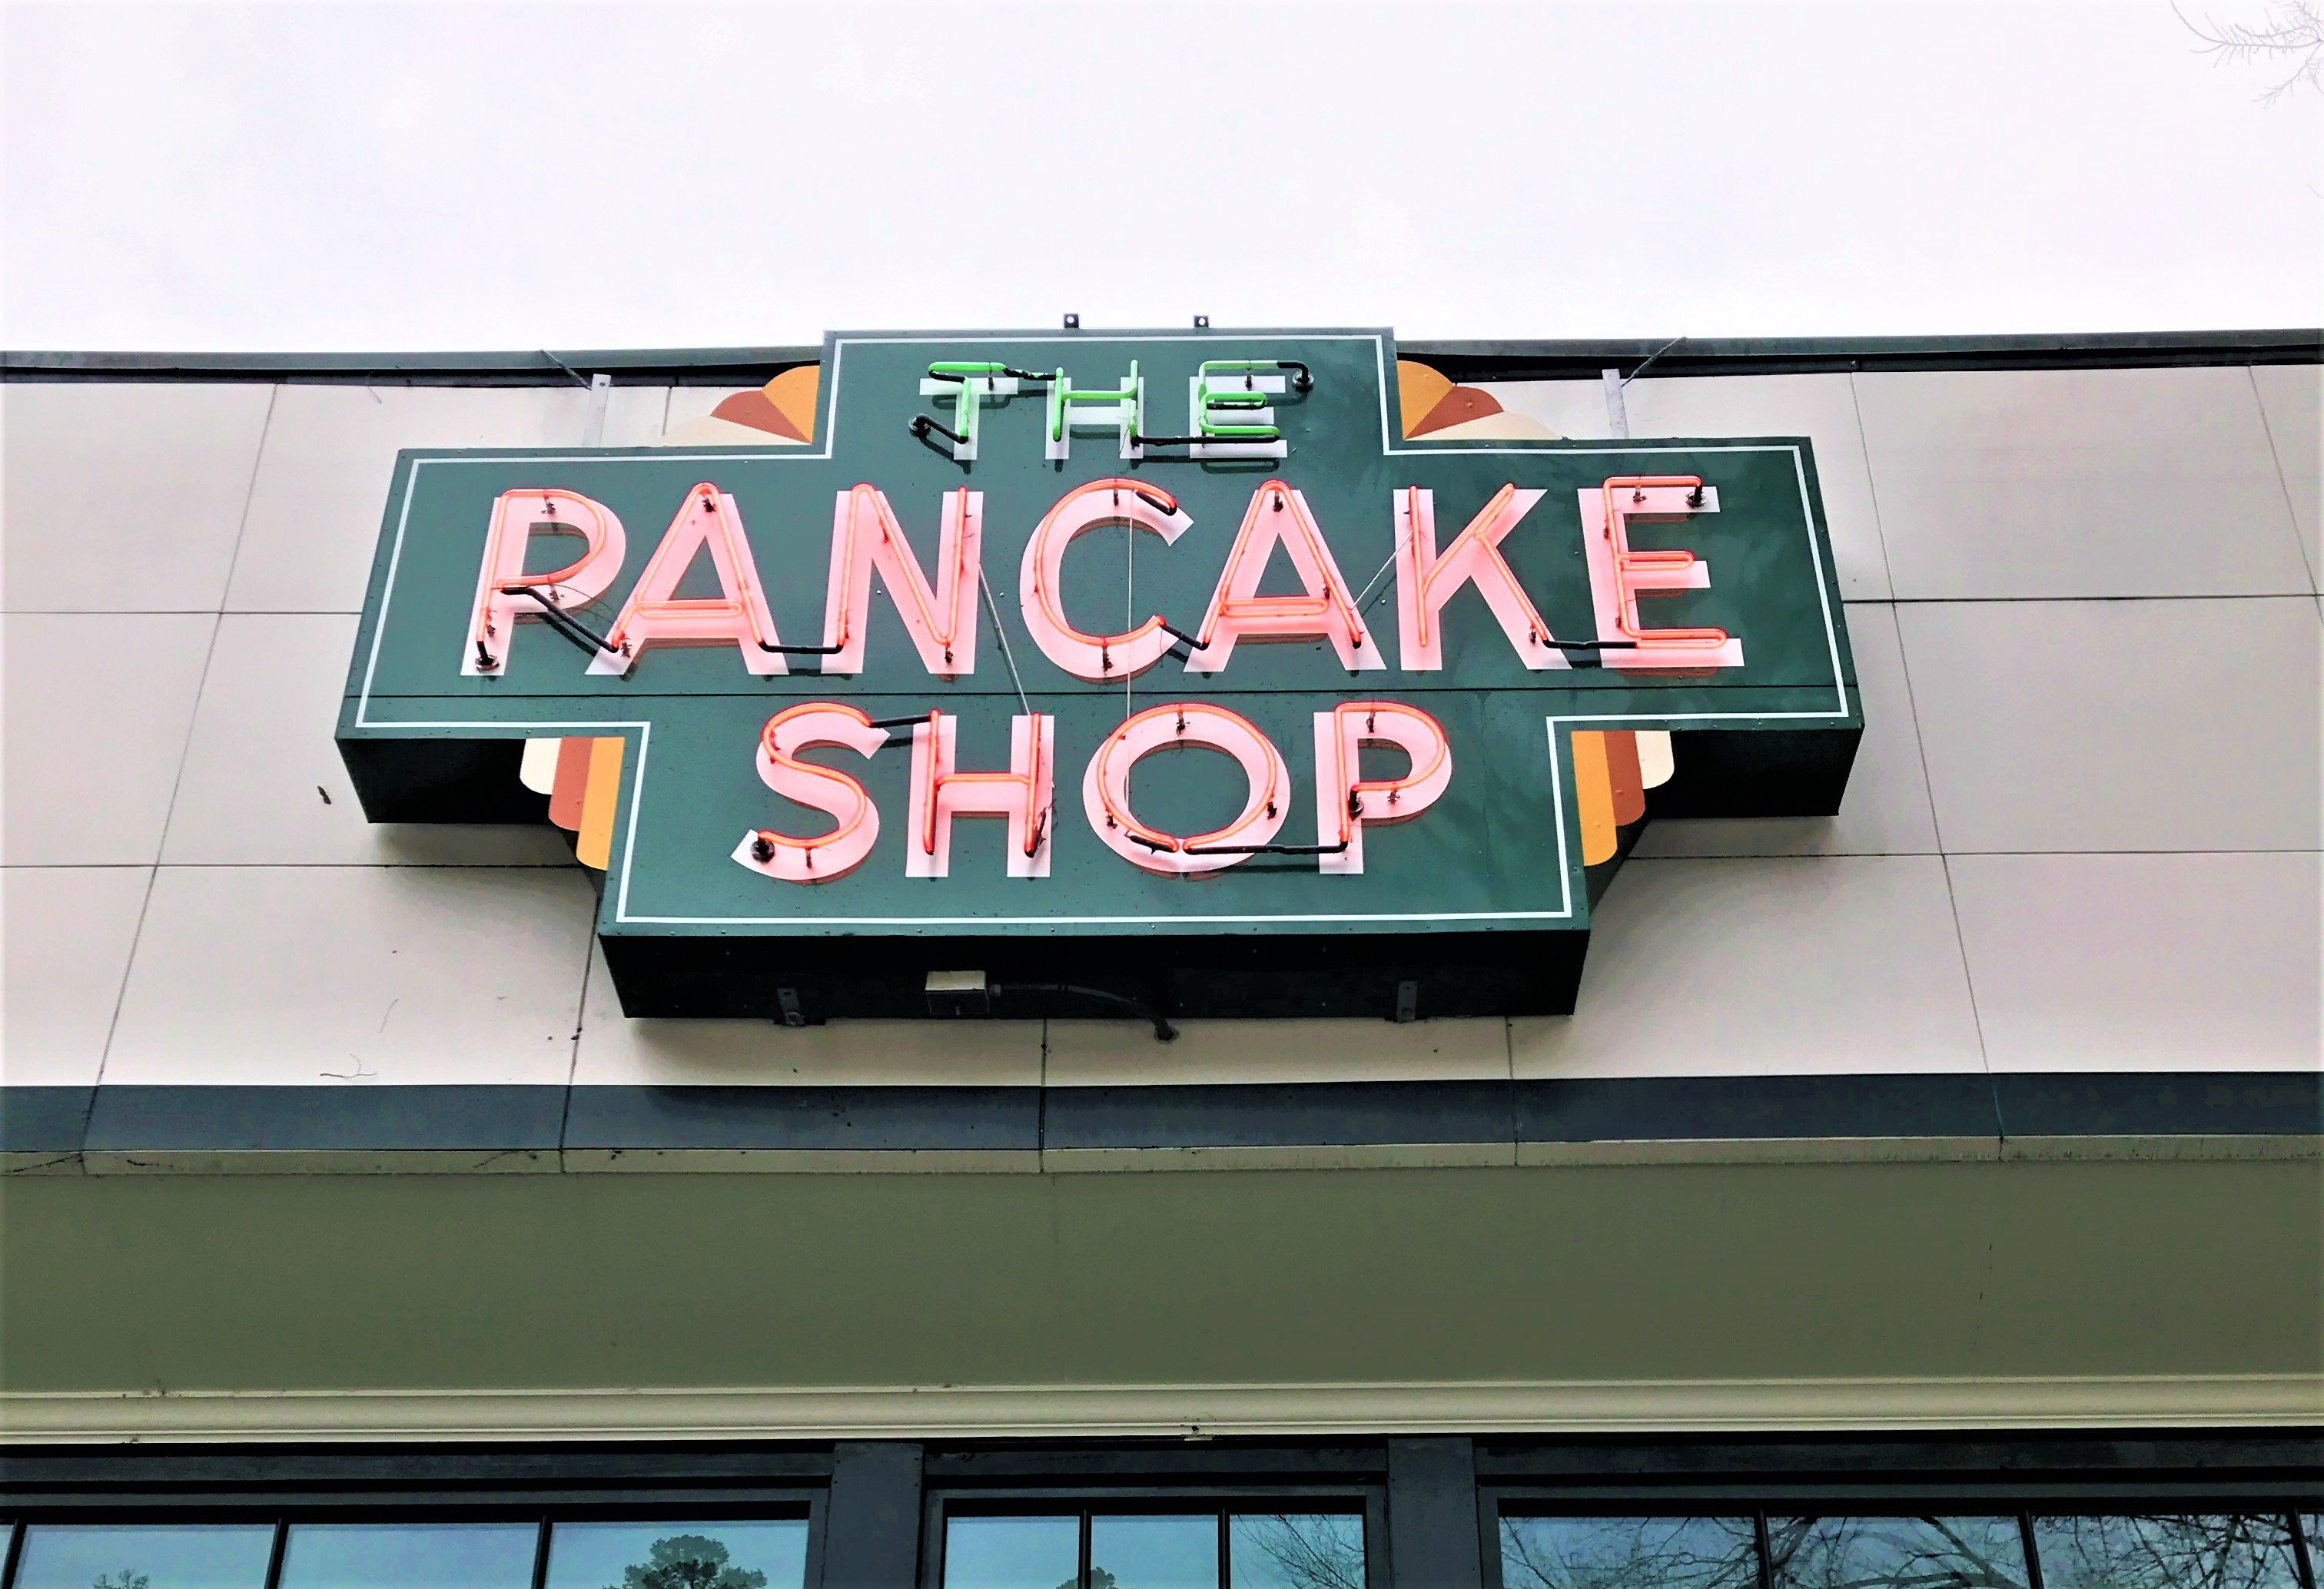 The Pancake Shop, Hot Springs, Arkansas